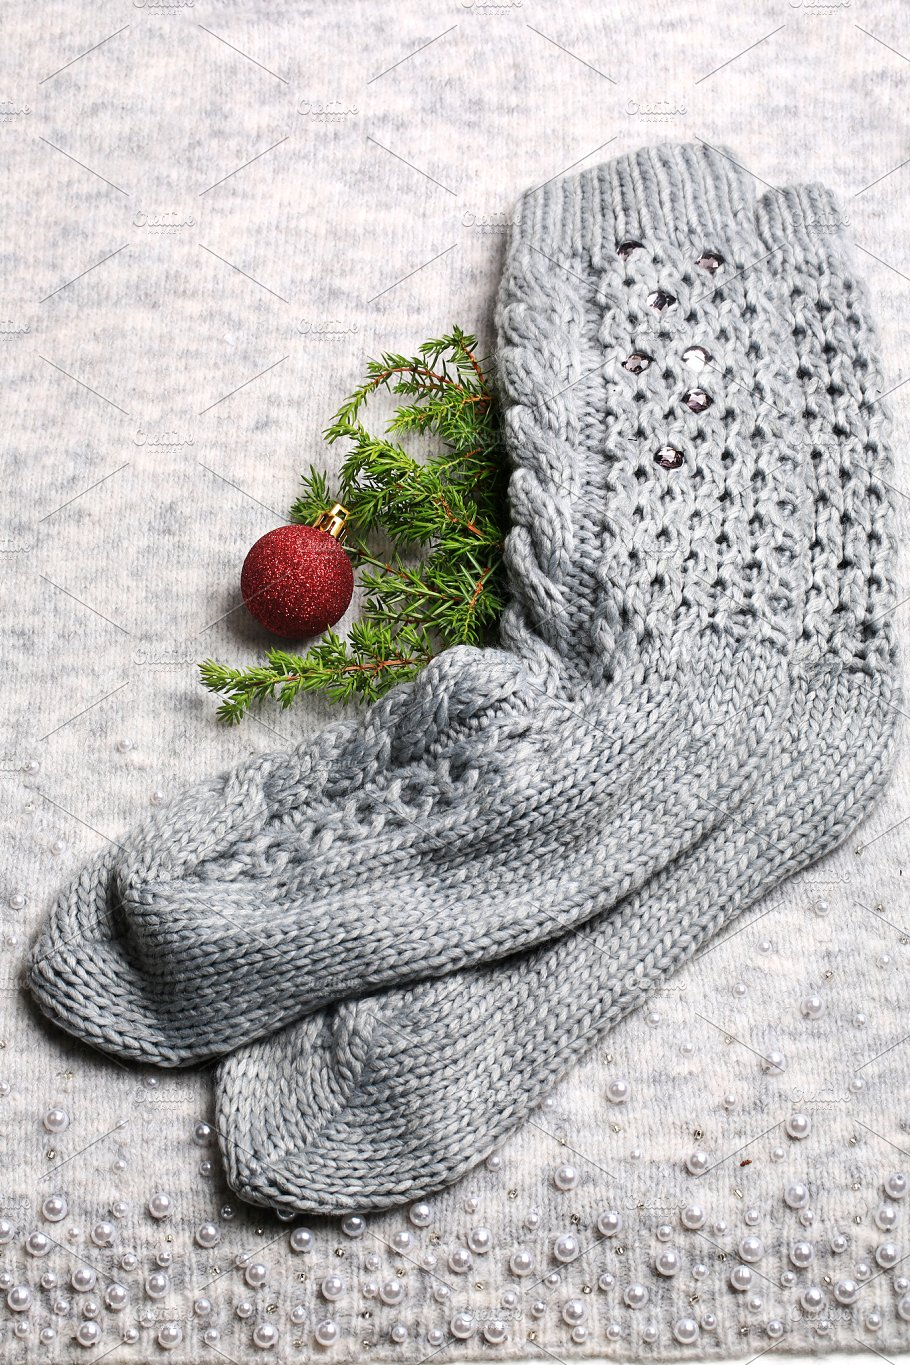 new year holiday background knitted socks christmas tree toy and a spruce branch on a knitted gray background christmas composition